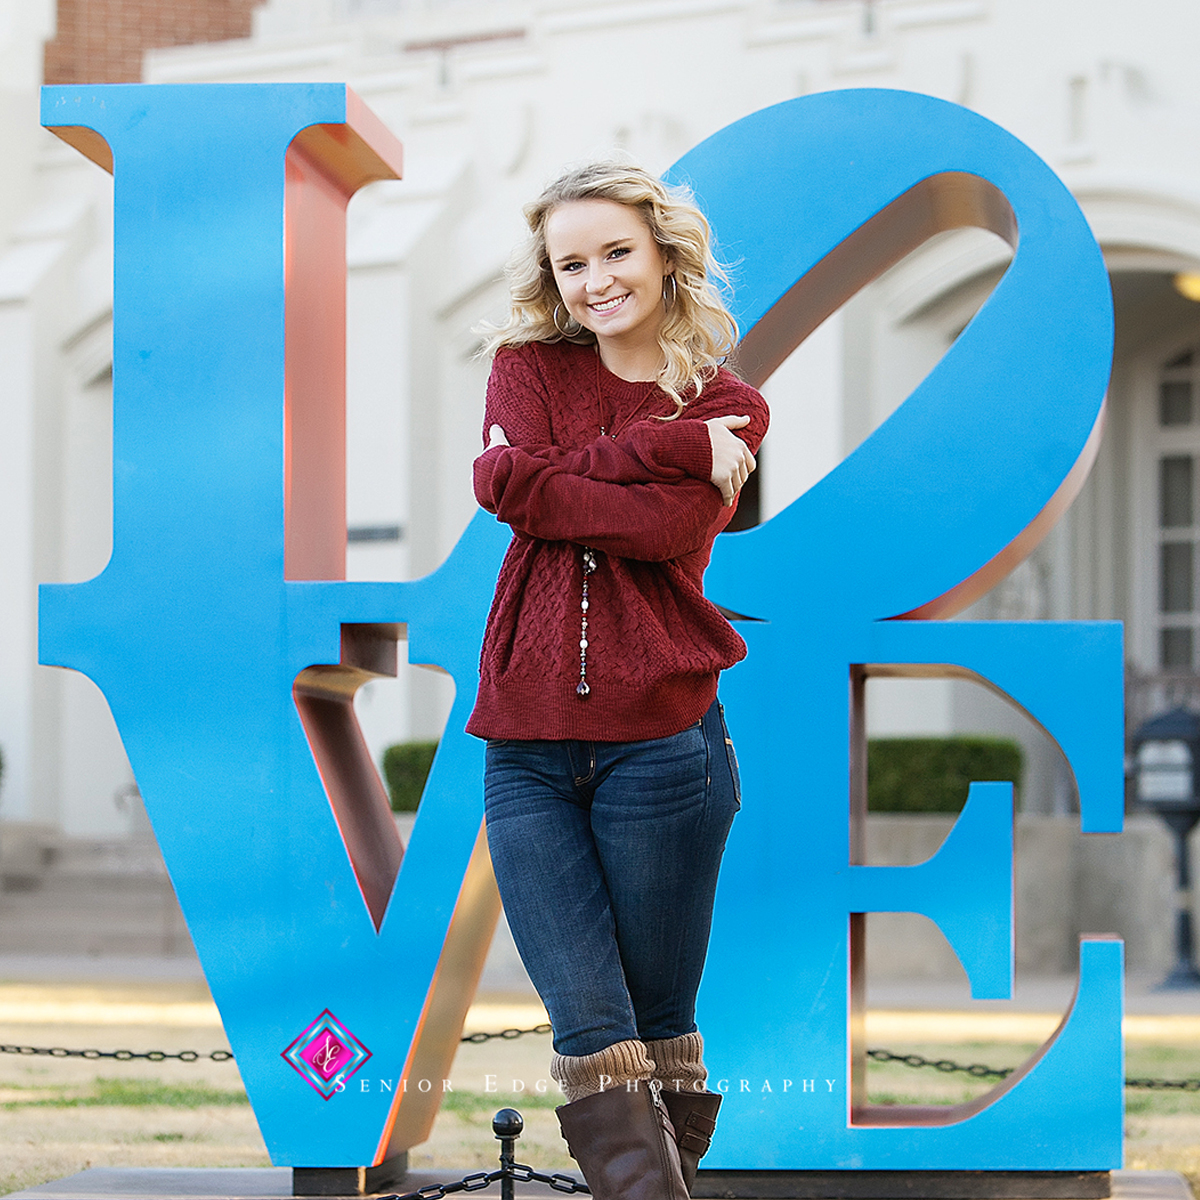 Senior Edge Photography, Teen Models (1)